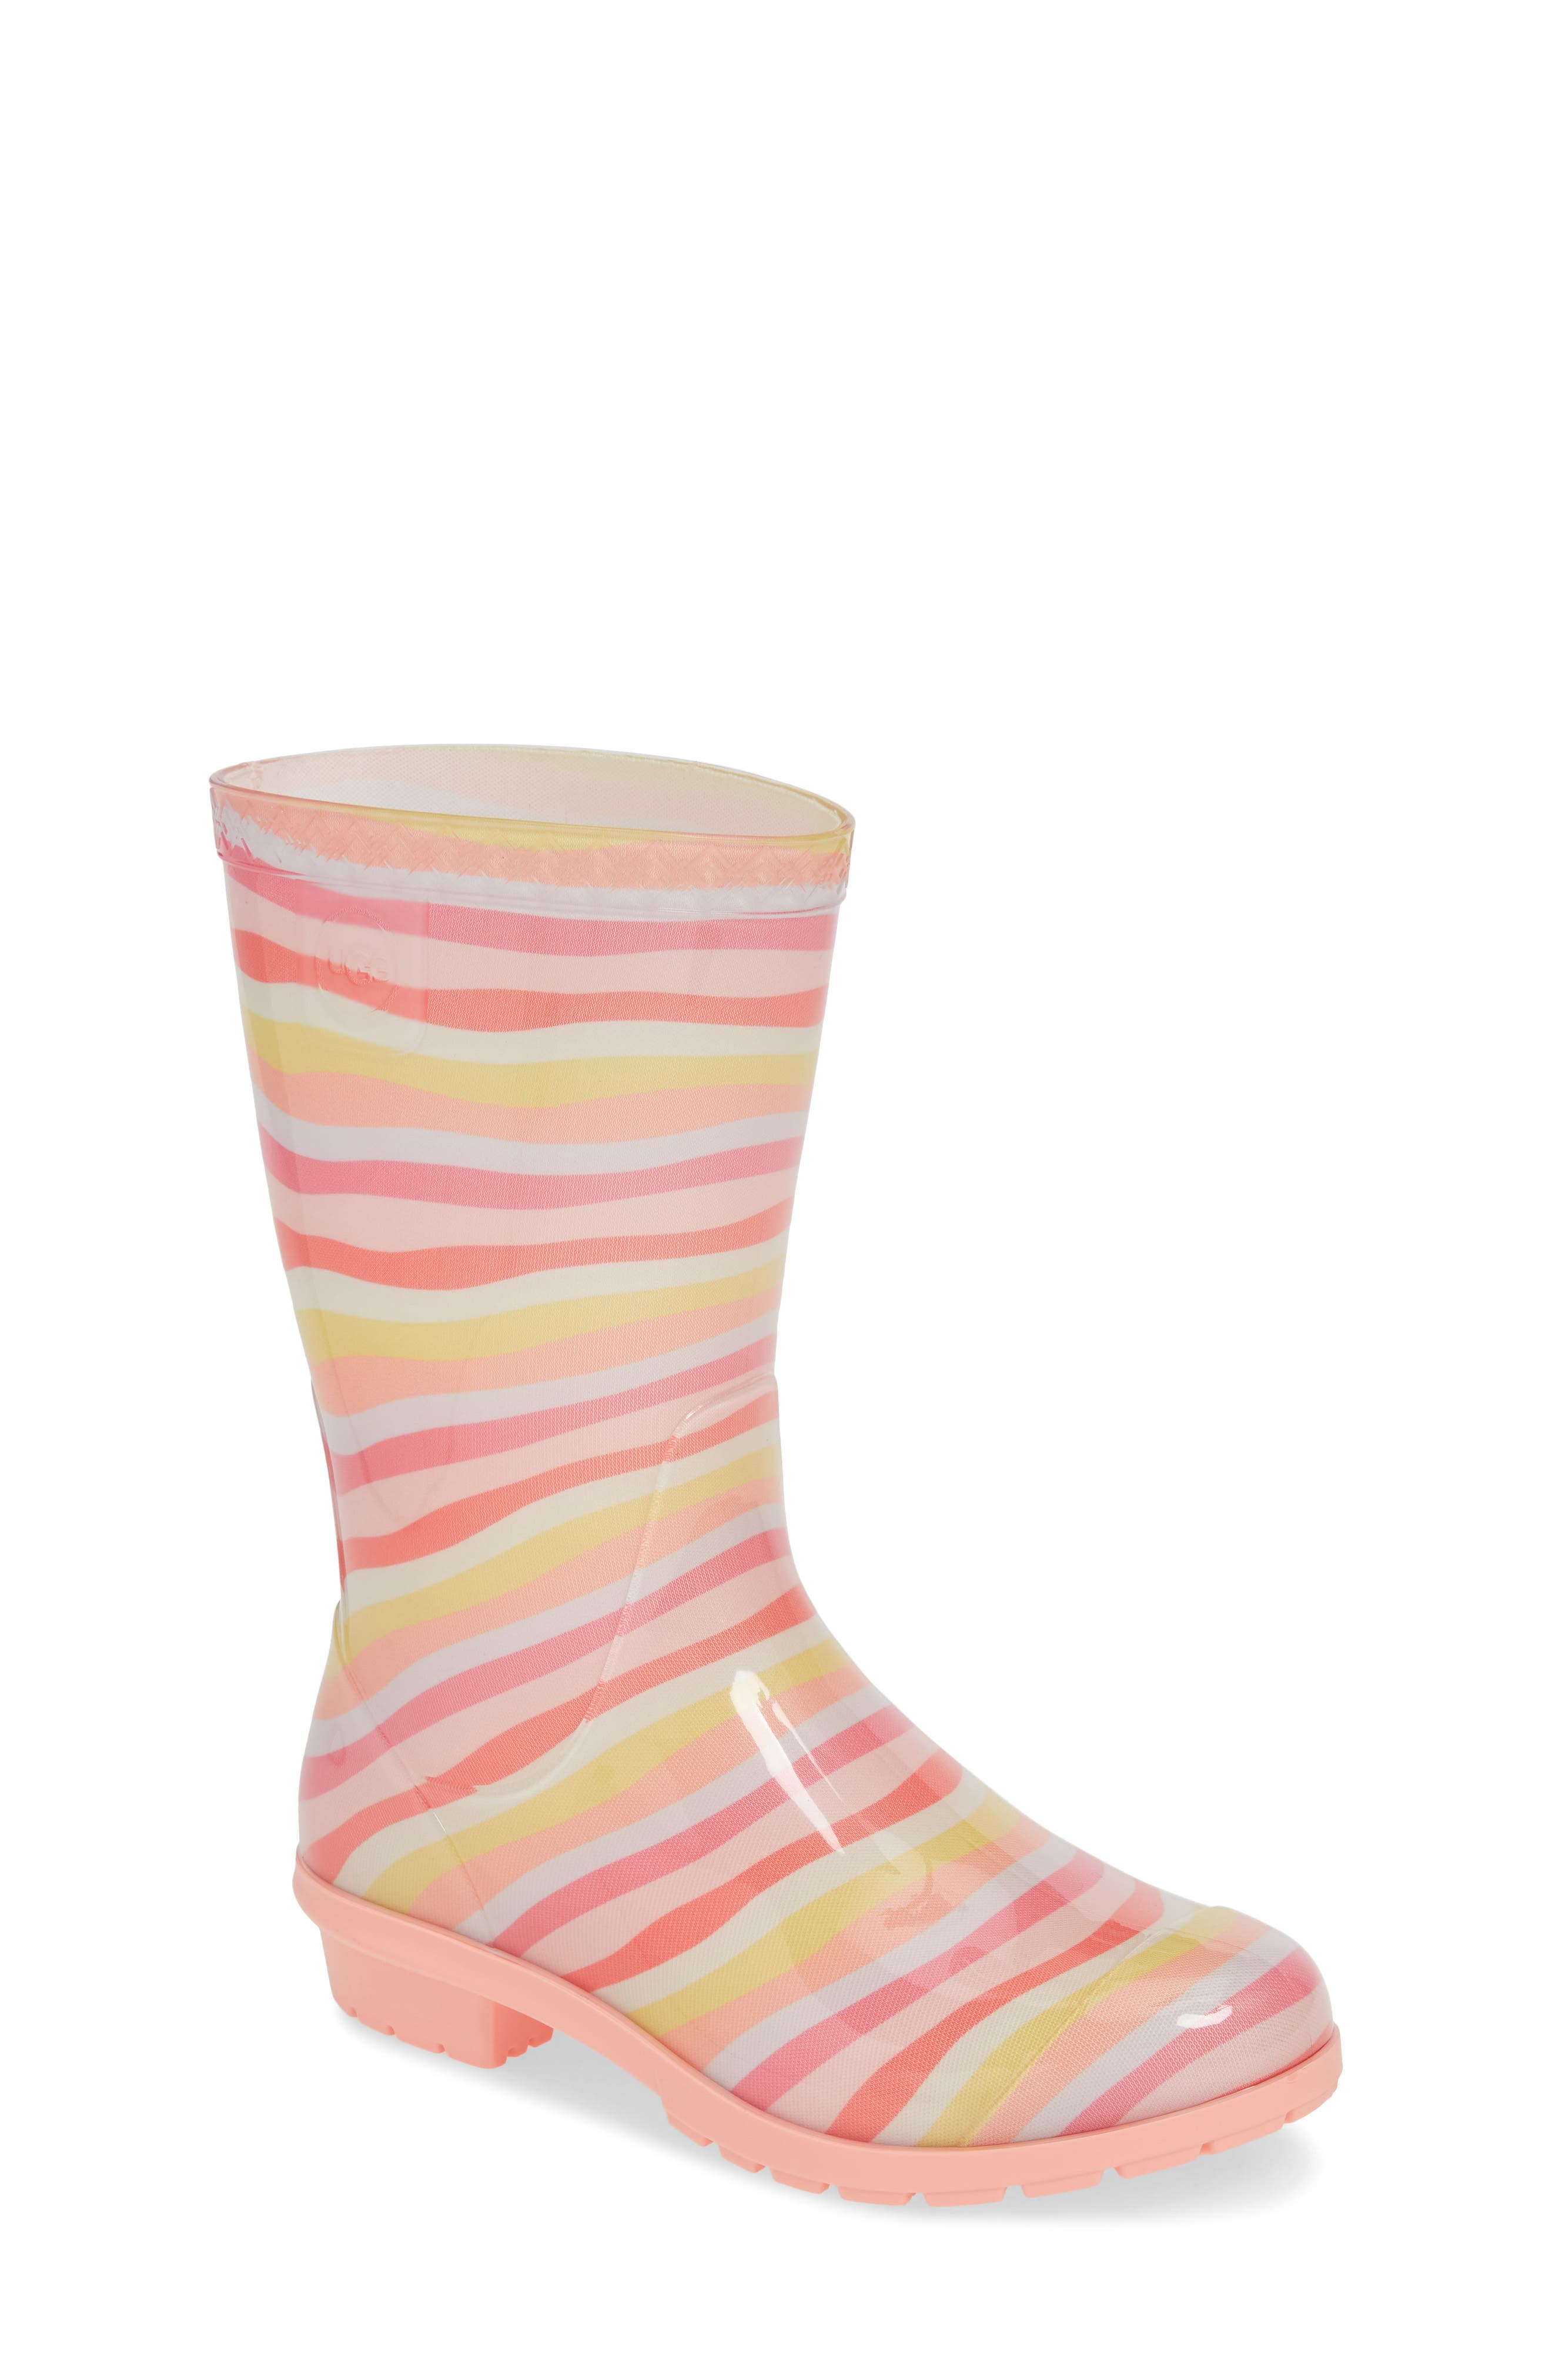 UGG<SUP>®</SUP>, Raana Waterproof Rain Boot, Main thumbnail 1, color, RAINBOW